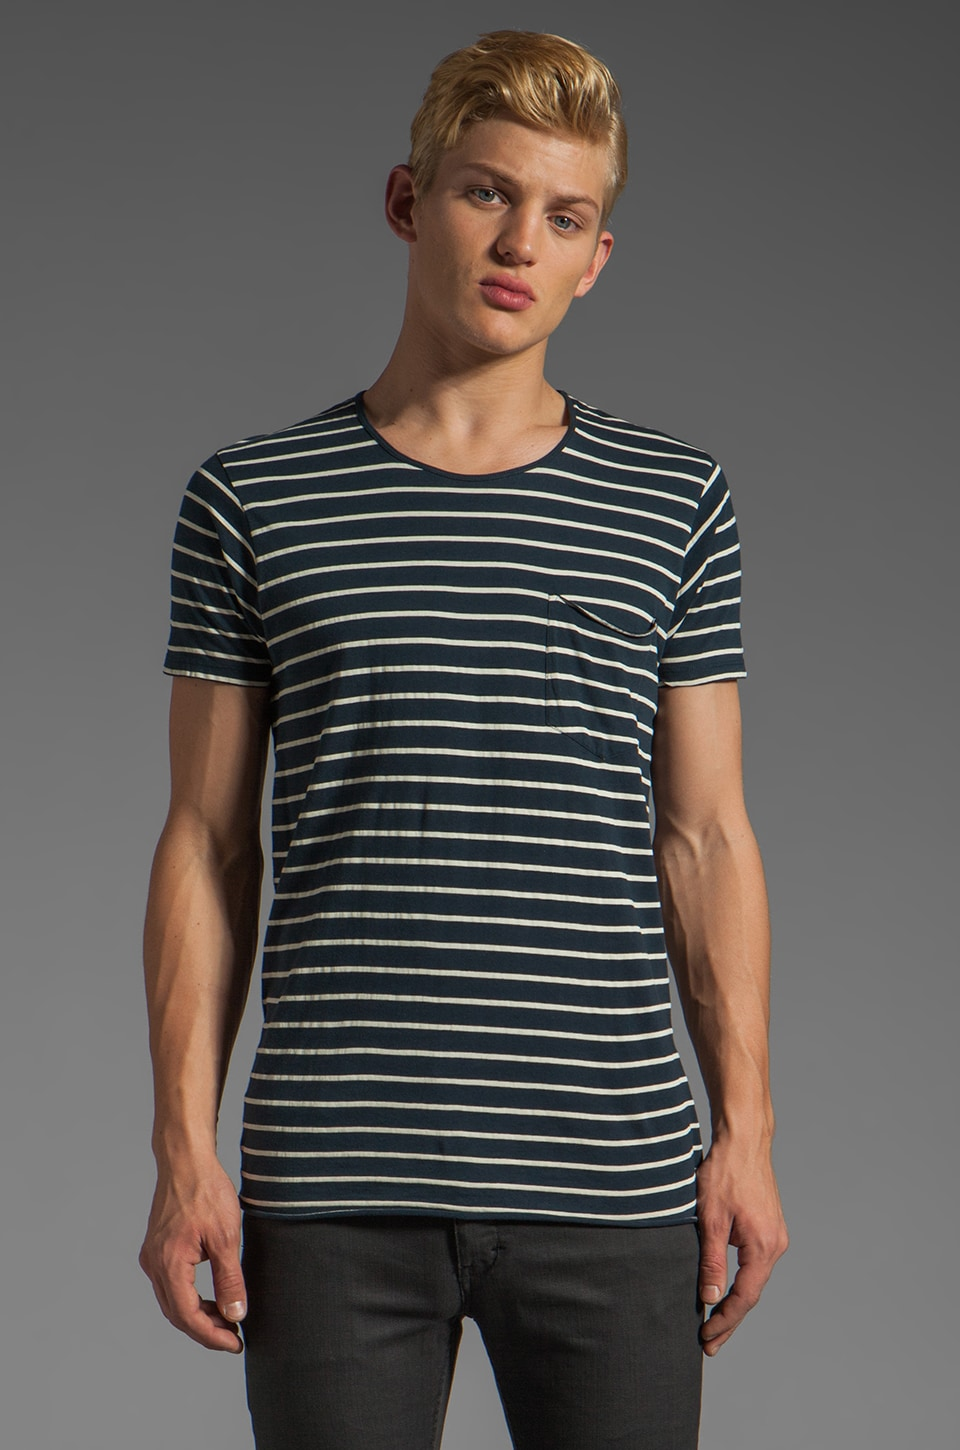 NEUW Enkel Pocket Tee in Navy